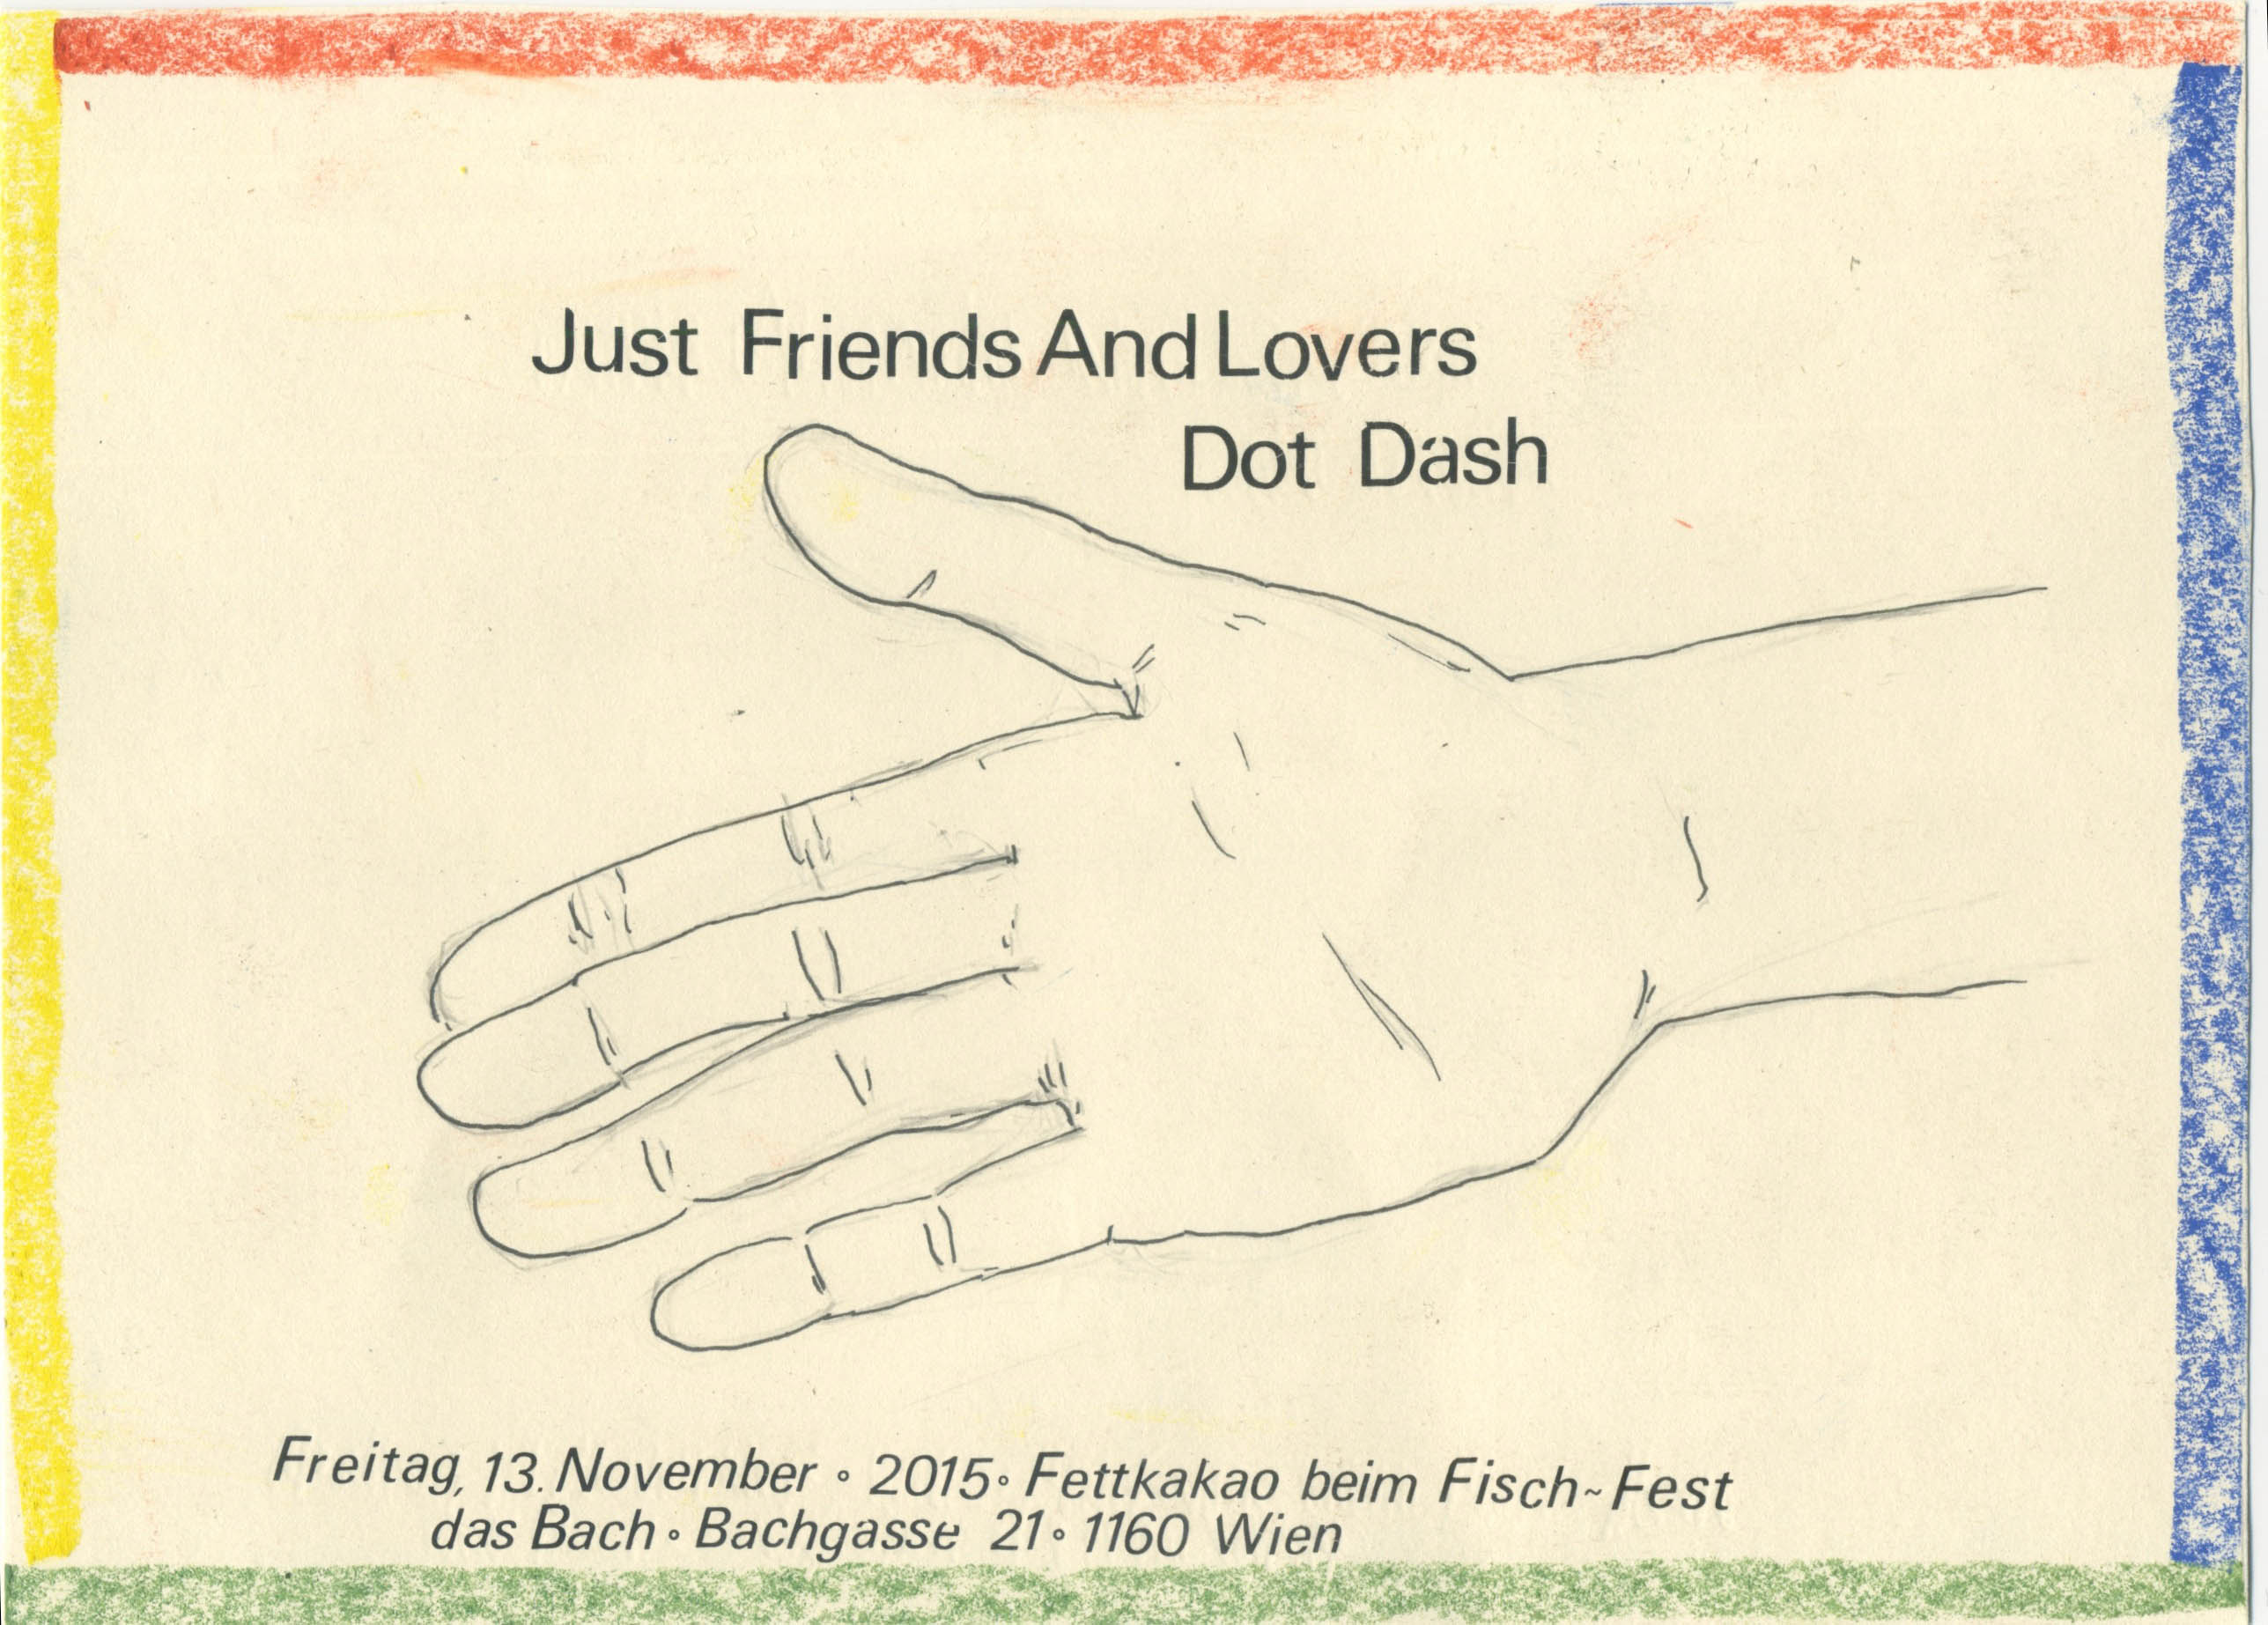 Just Friends and Lovers & Dot Dash at Fisch-Fest